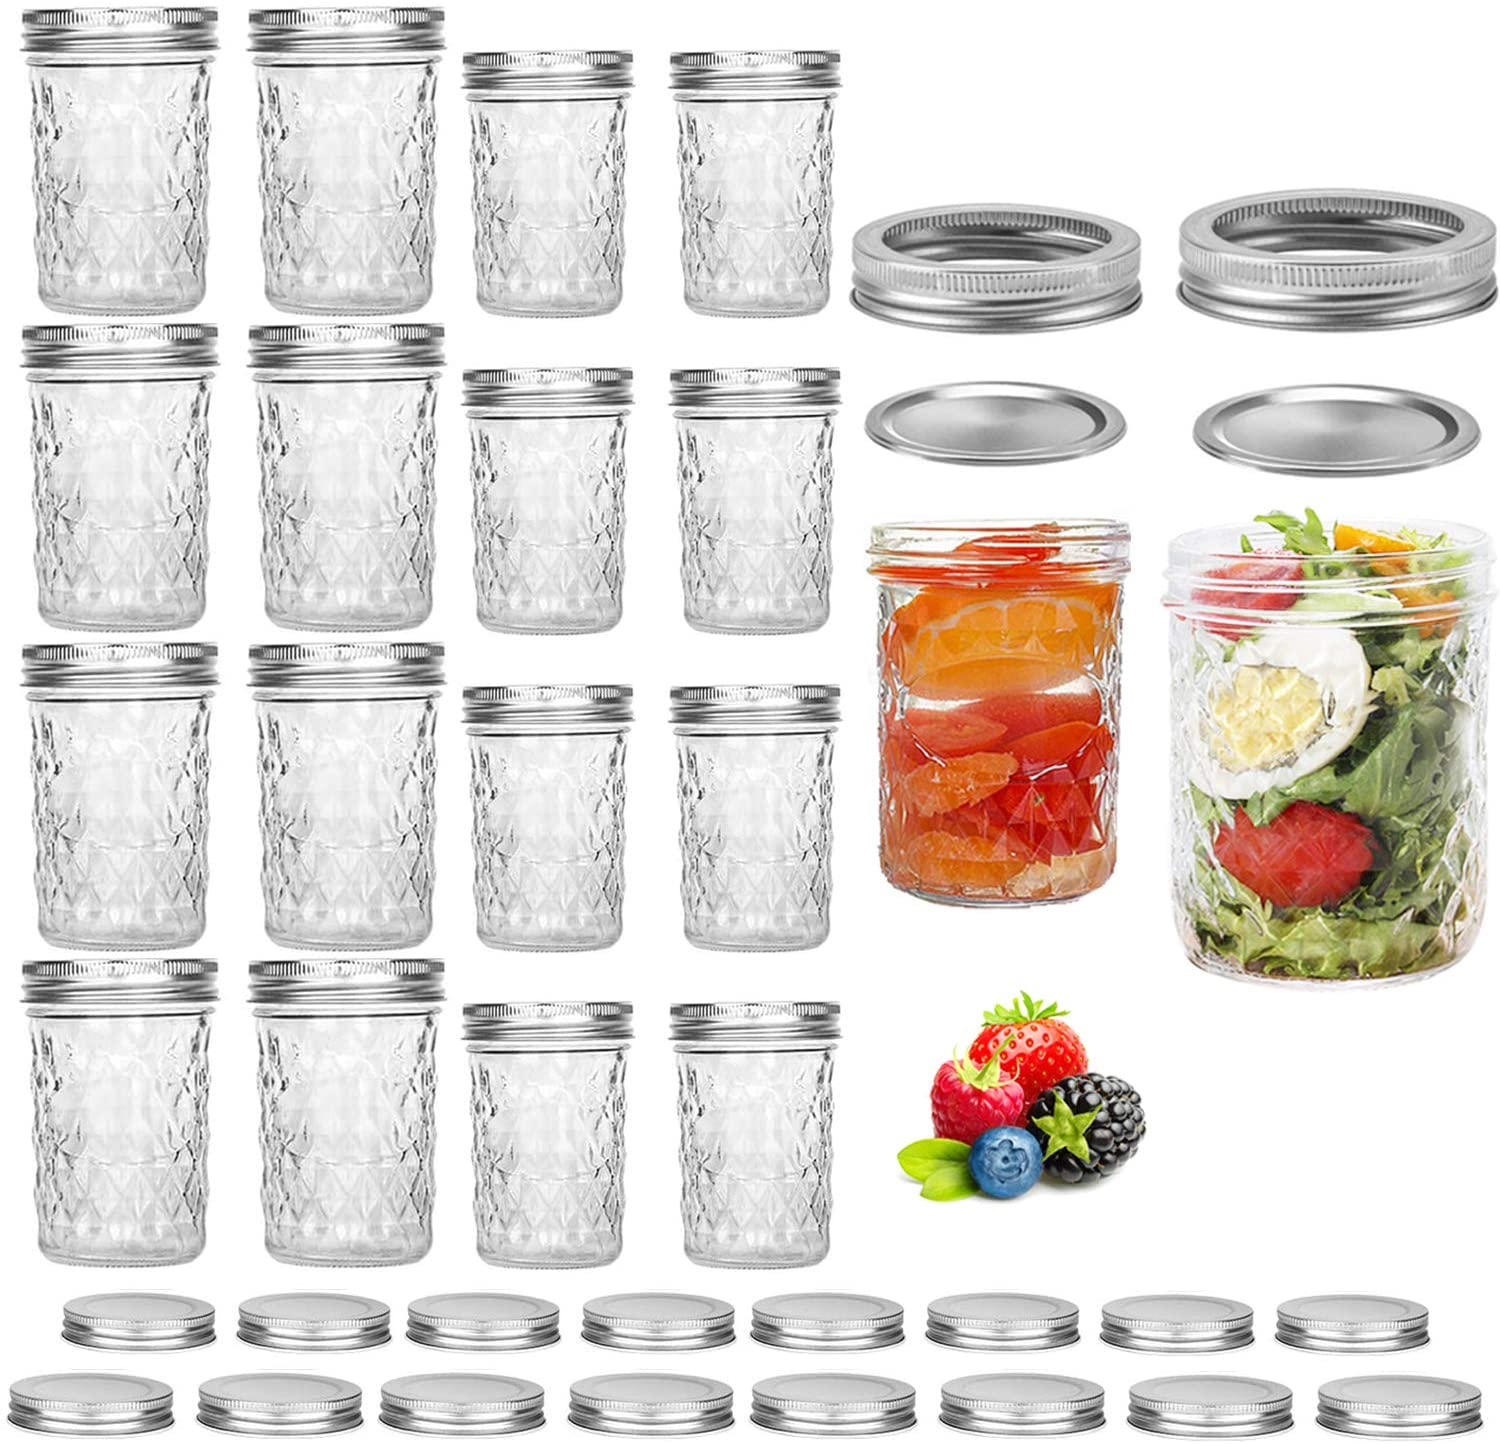 Pack of 16 Mason Jars, Canning Jars, Jelly Jars With Regular Lids, Ideal for Jam, Honey, Baby Foods, Pickling, Preserving, Fermenting, Craft and Dry Food Storage, Spice Jars - 8 OZ x 8, 16 OZ x 8